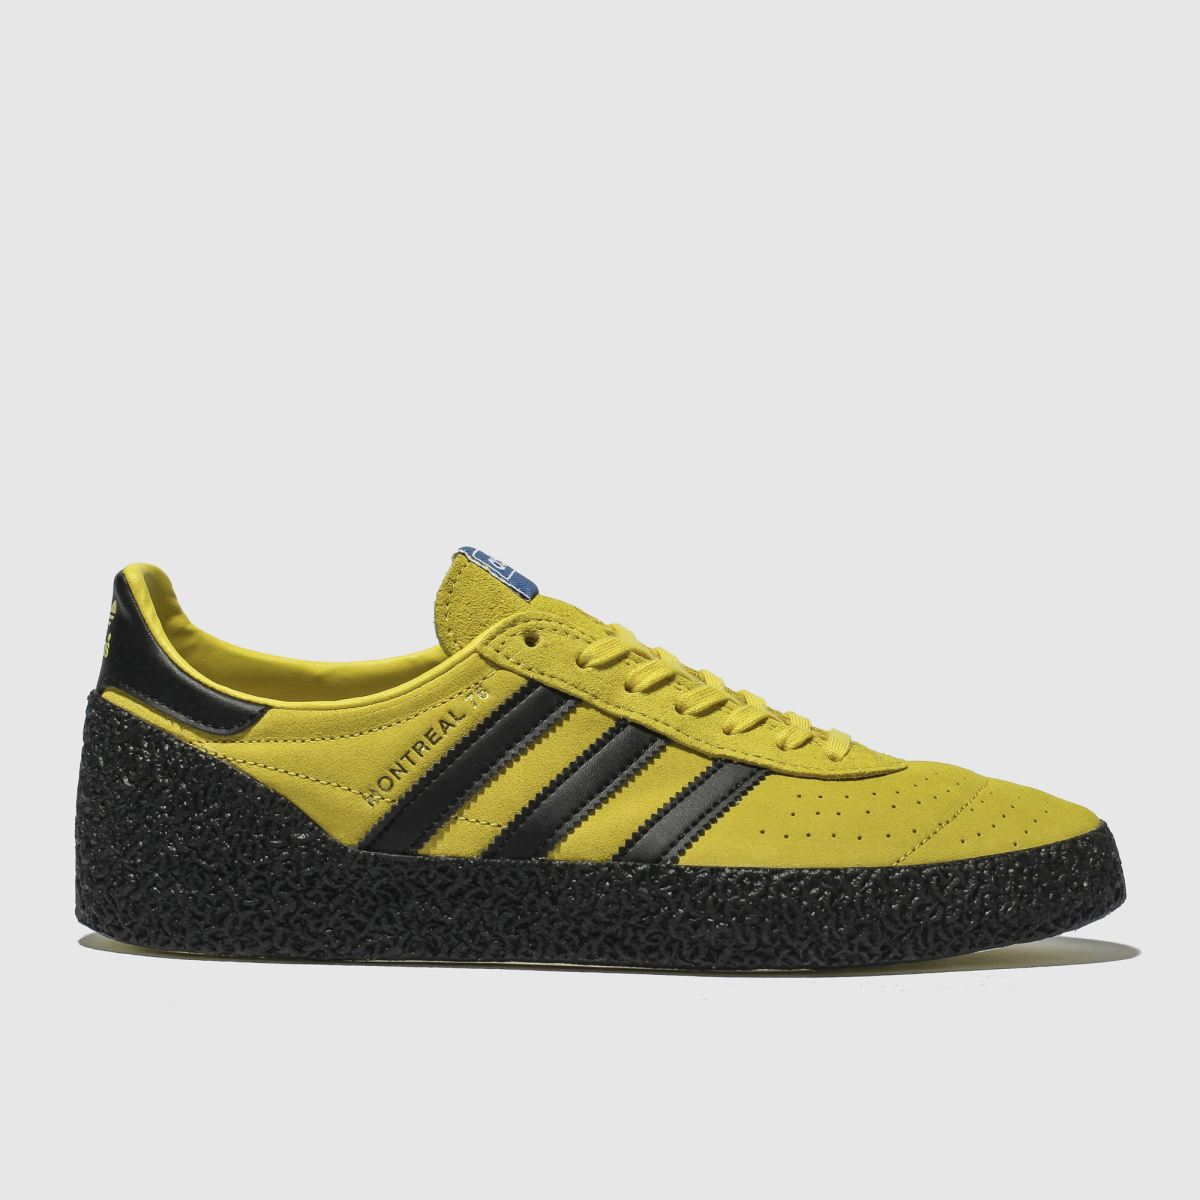 Adidas Yellow Montreal 76 Trainers